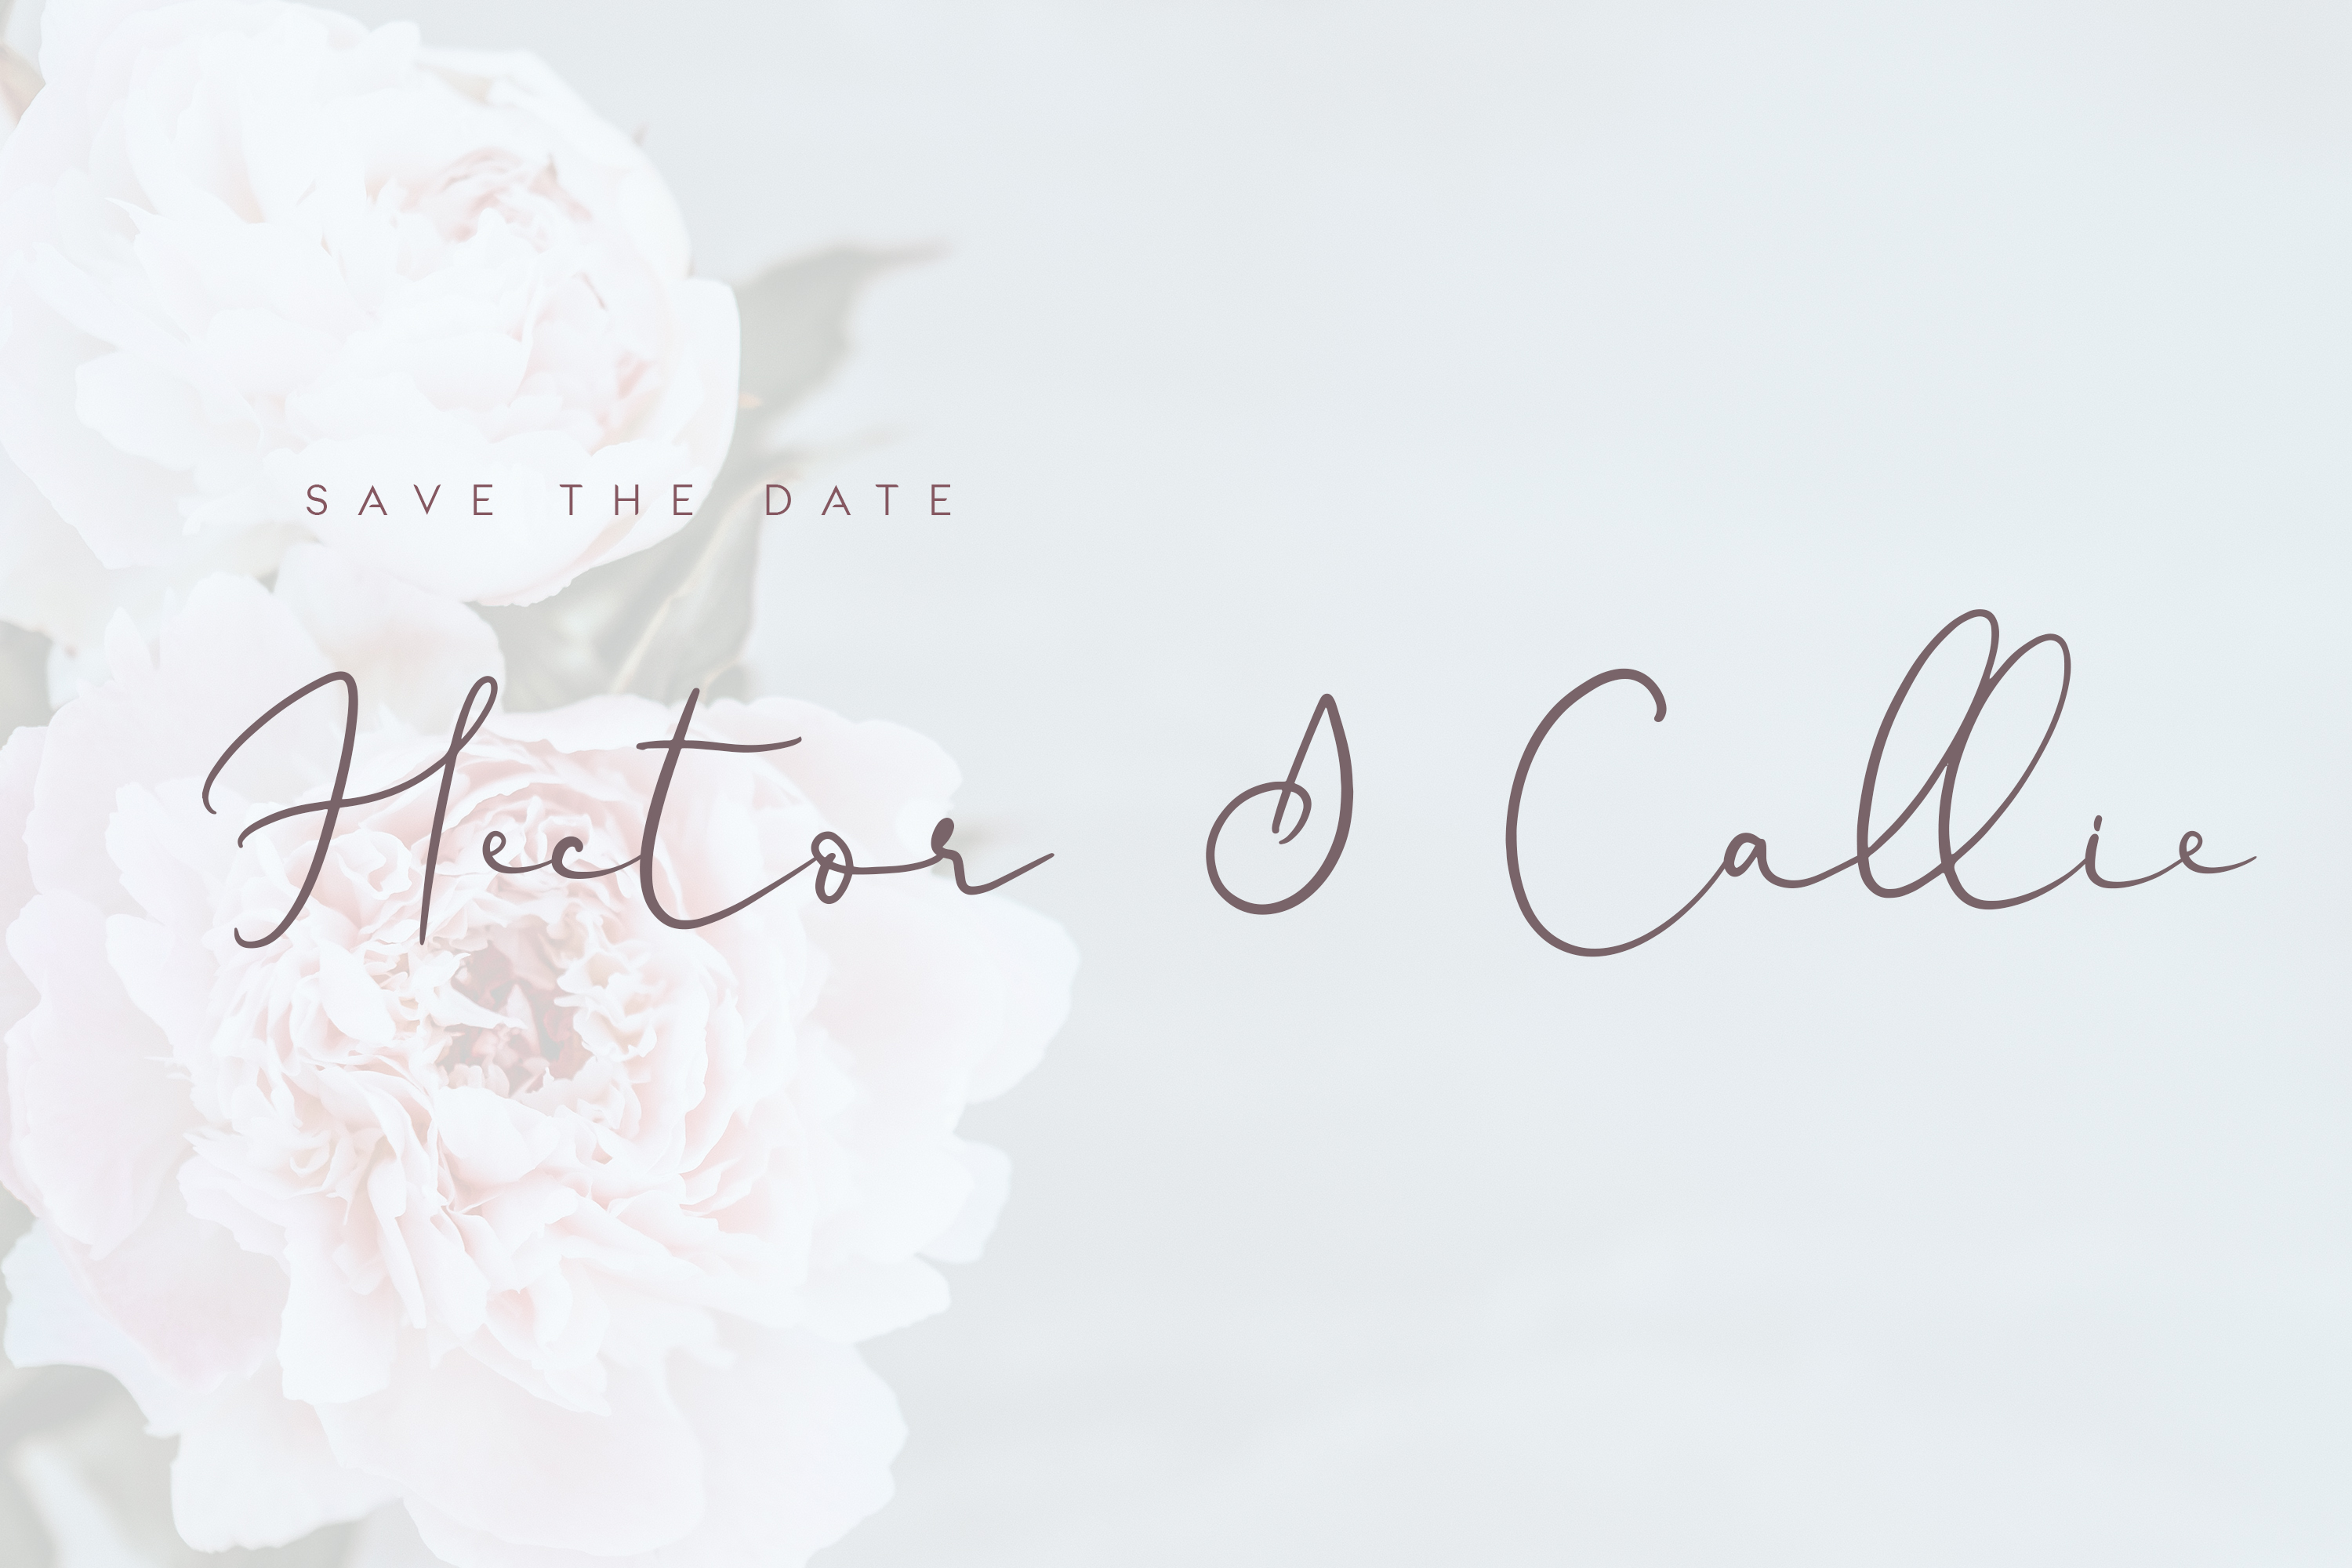 Ametrine, super-casual style font example image 5